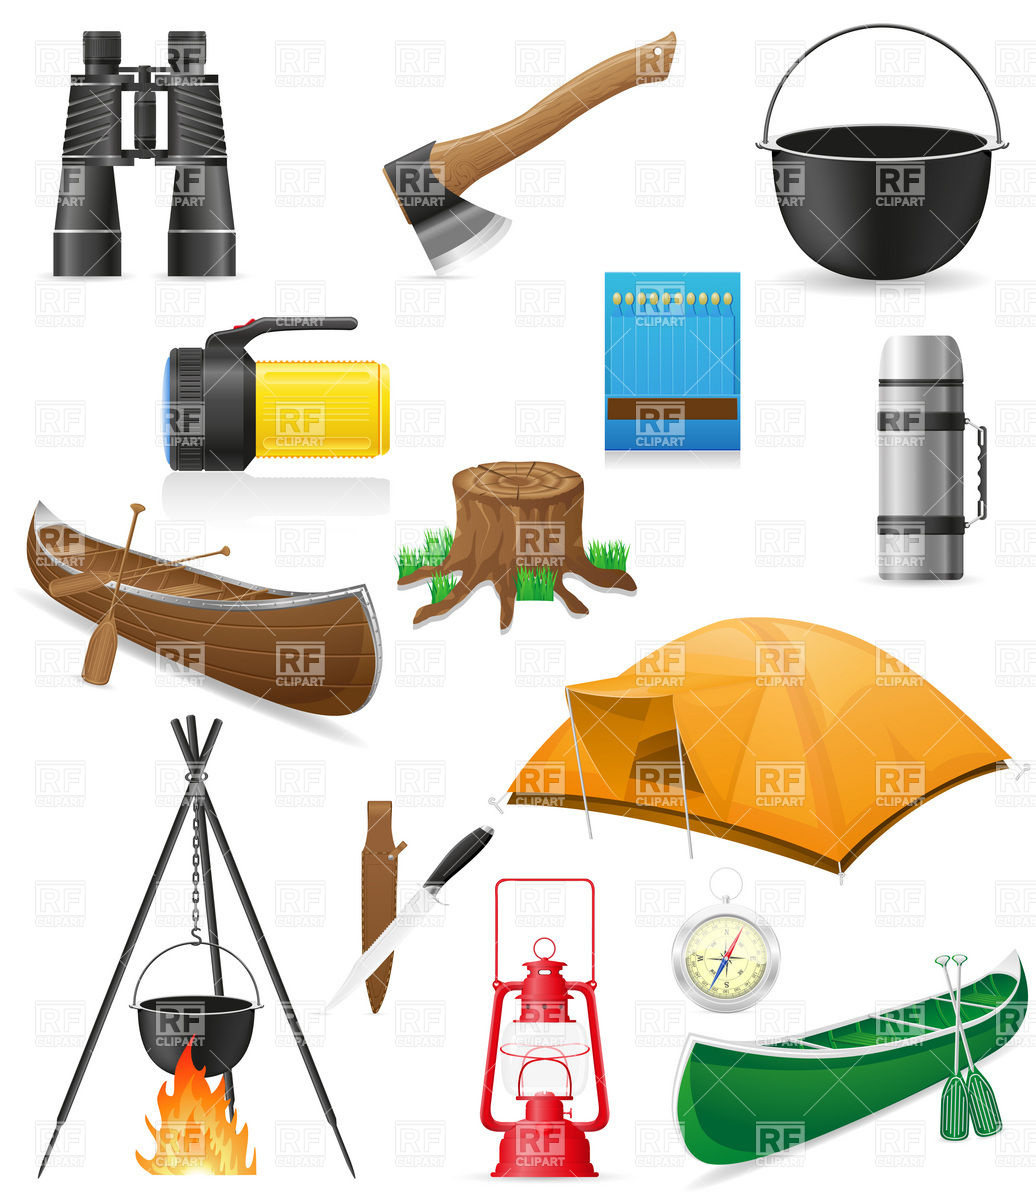 Hiking clipart camping gear Outdoor And Hiking Equipment Hiking